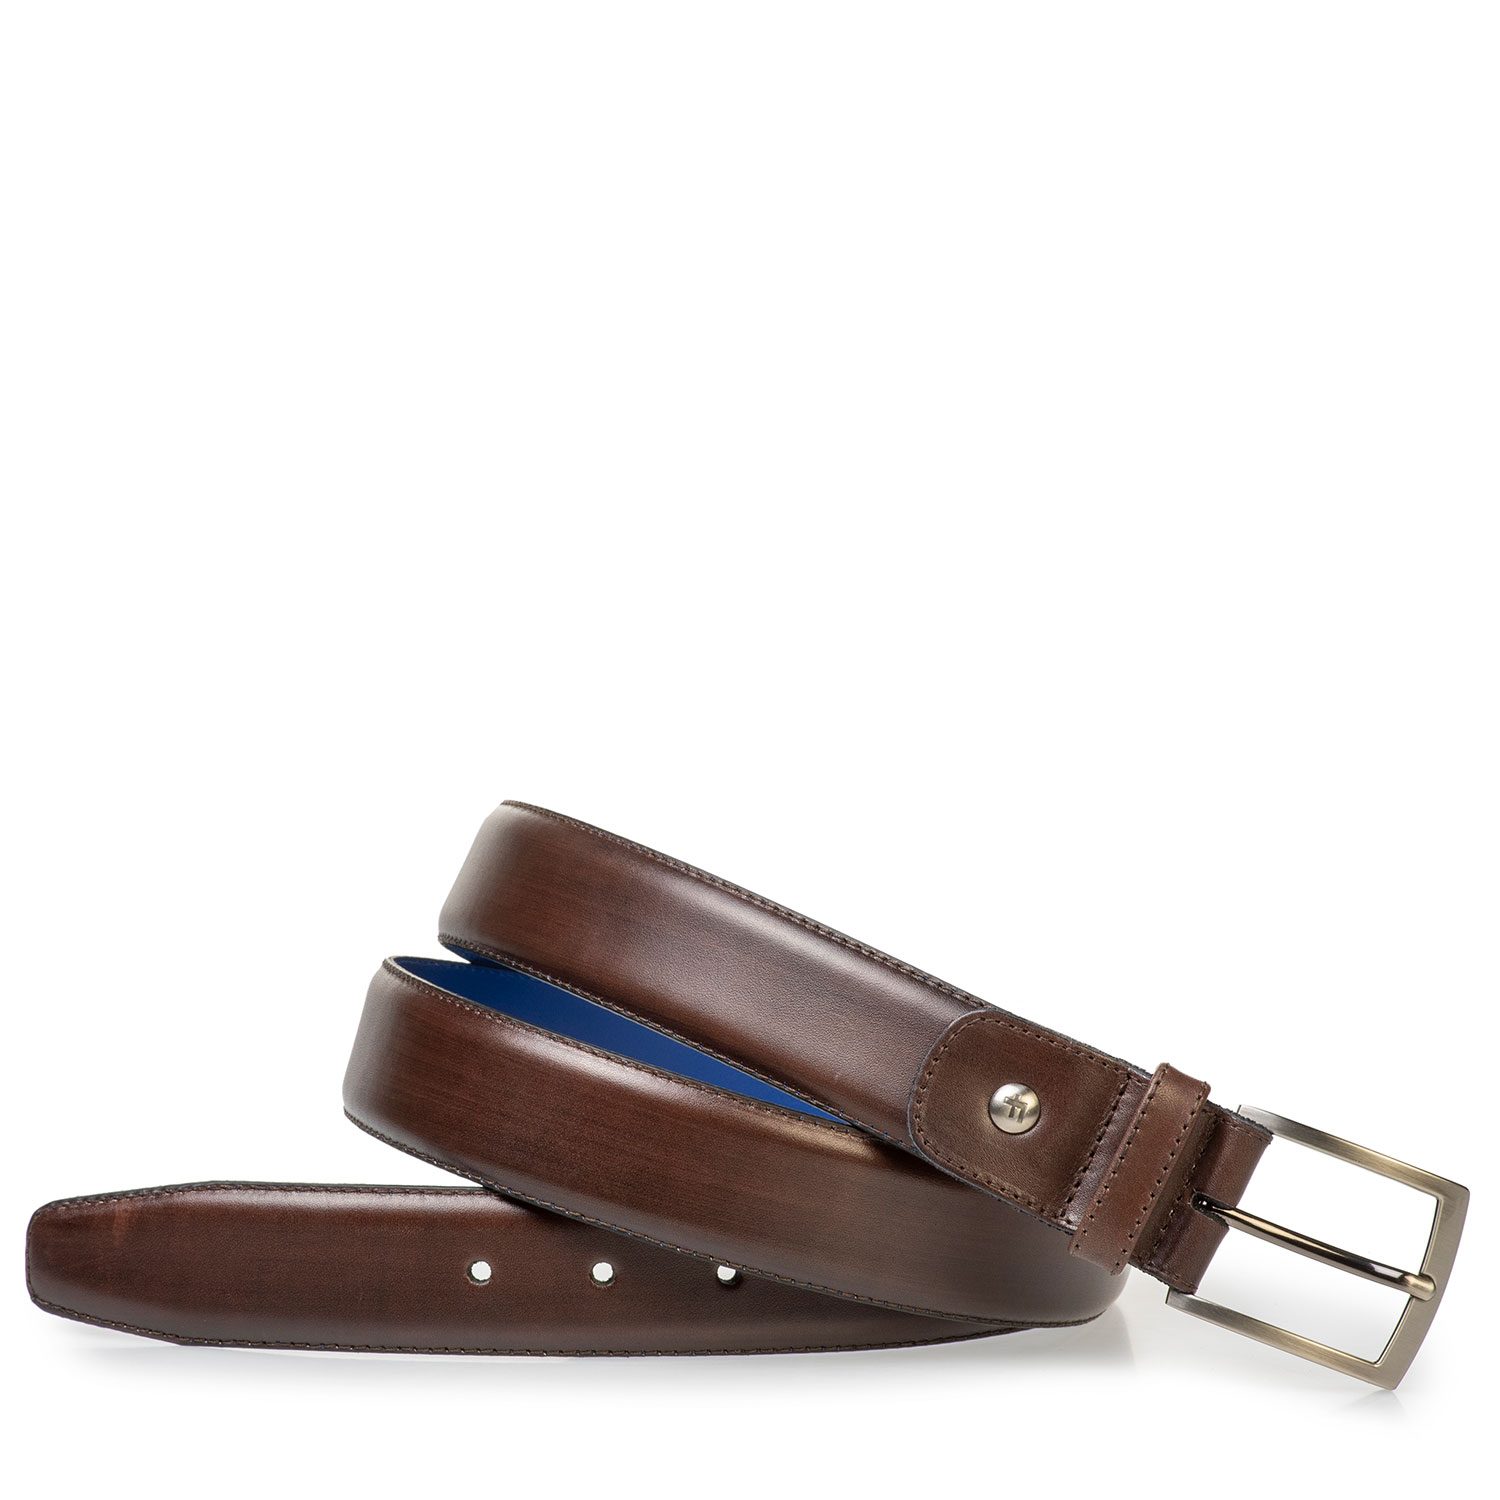 75144/03 - Darkbrown belt made of calf's leather